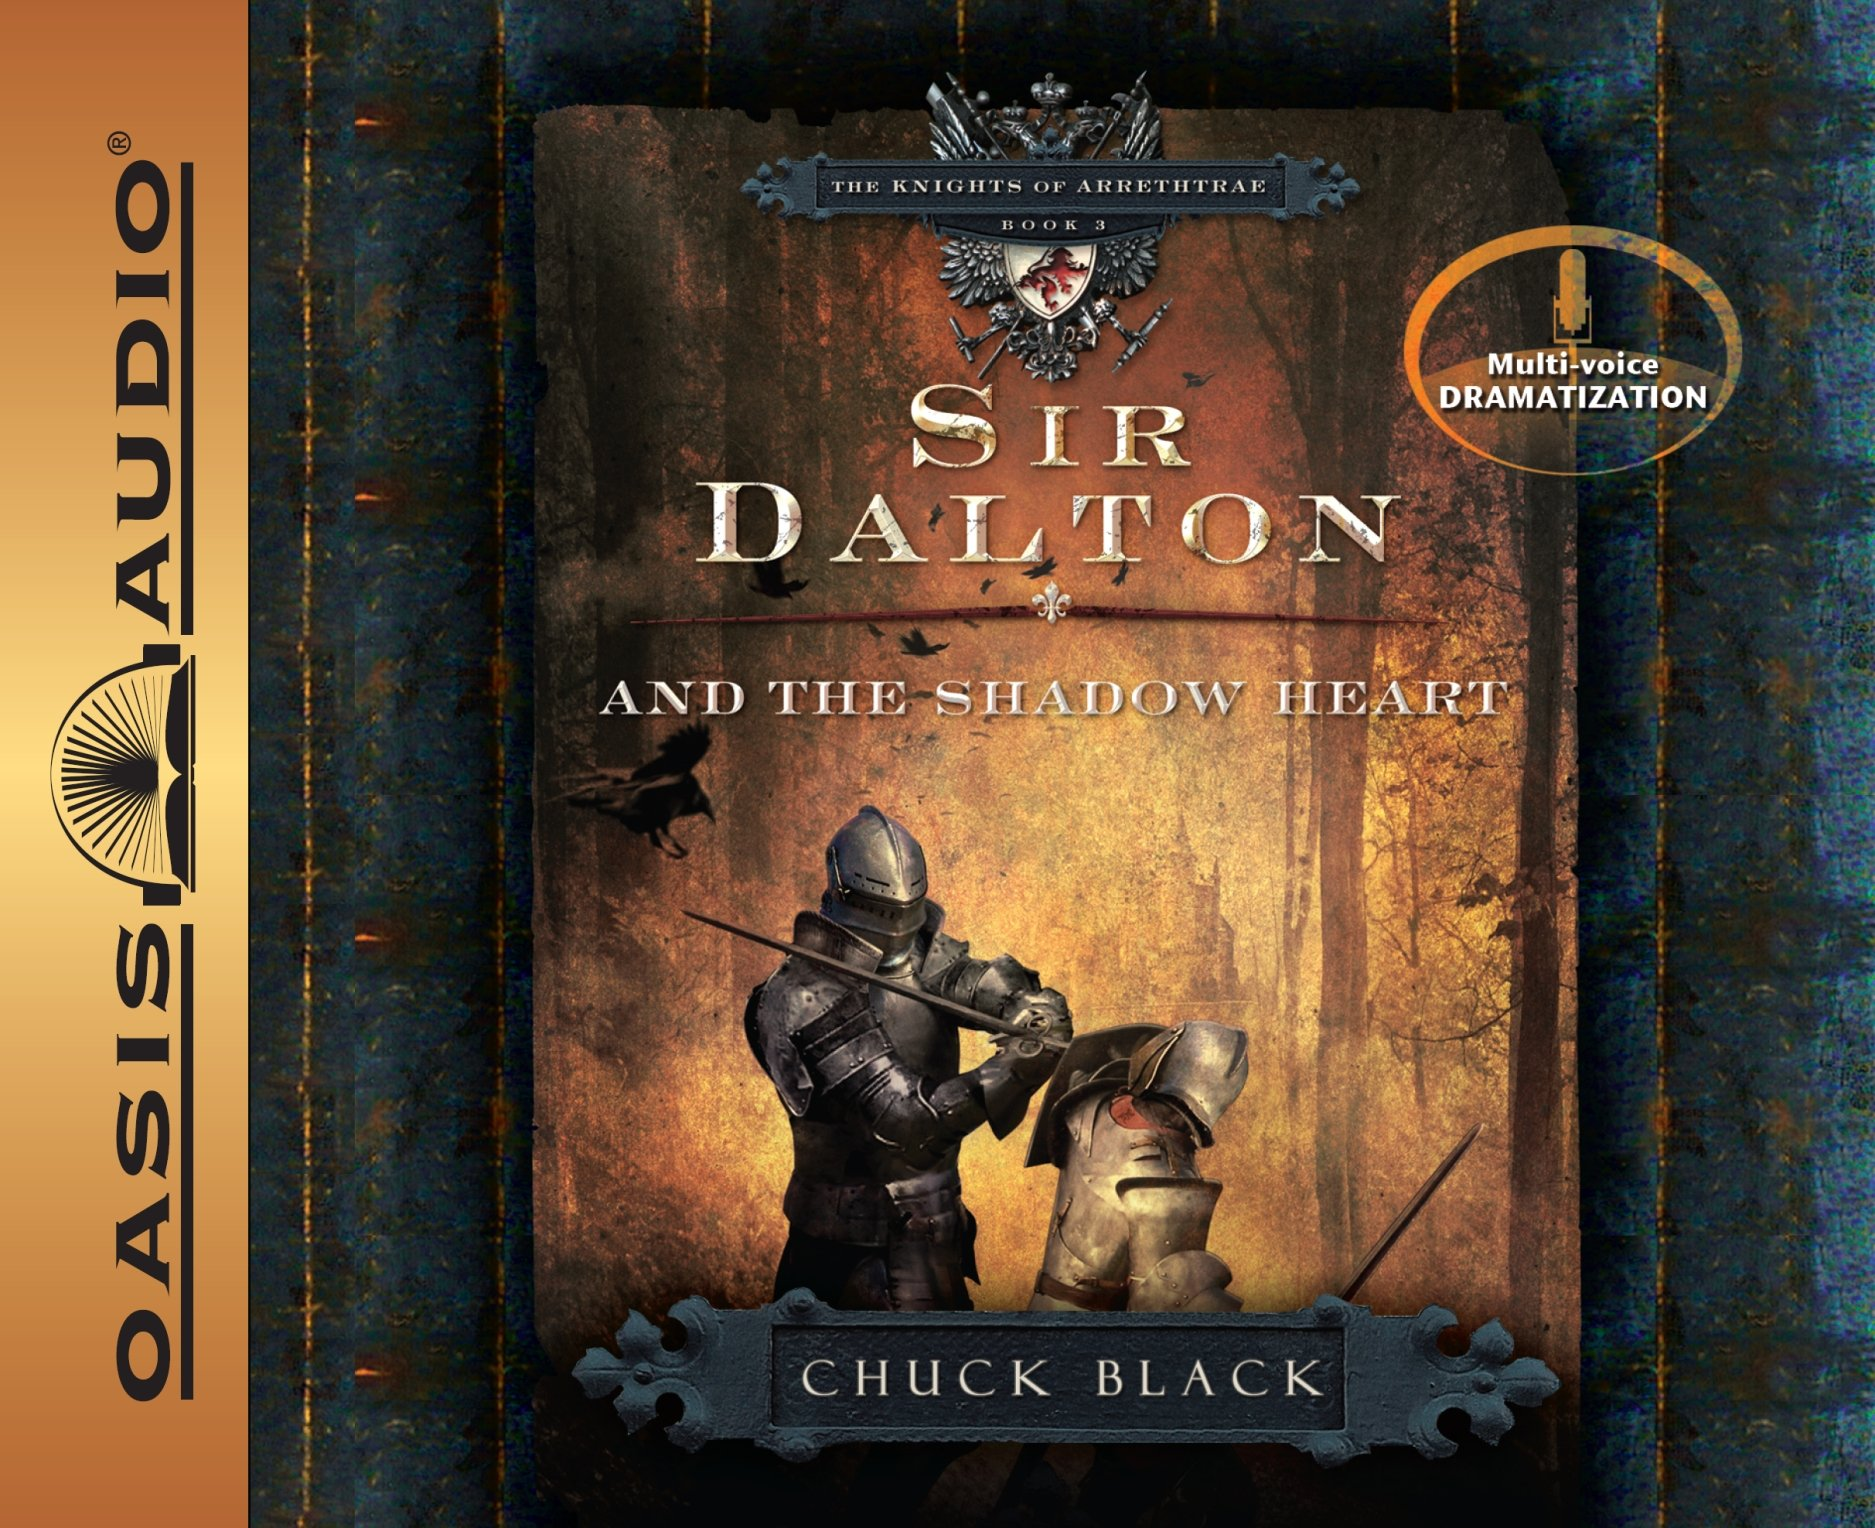 Sir Dalton and the Shadow Heart (Library Edition) (The Knights of Arrethtrae)